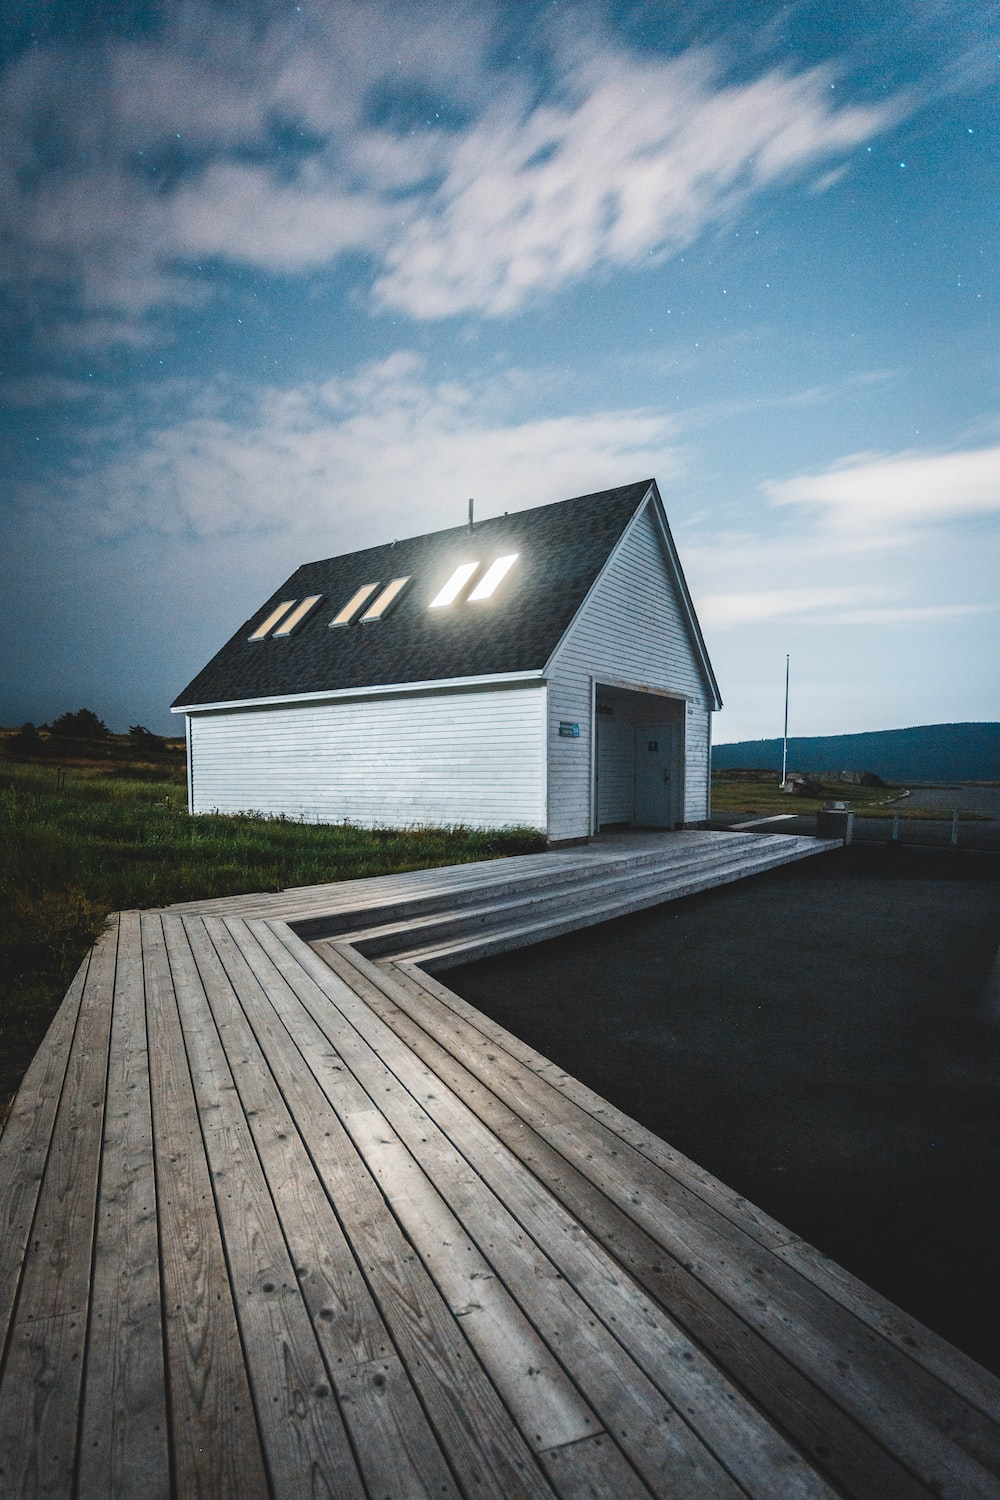 white and black wooden house near green grass field under blue sky during daytime